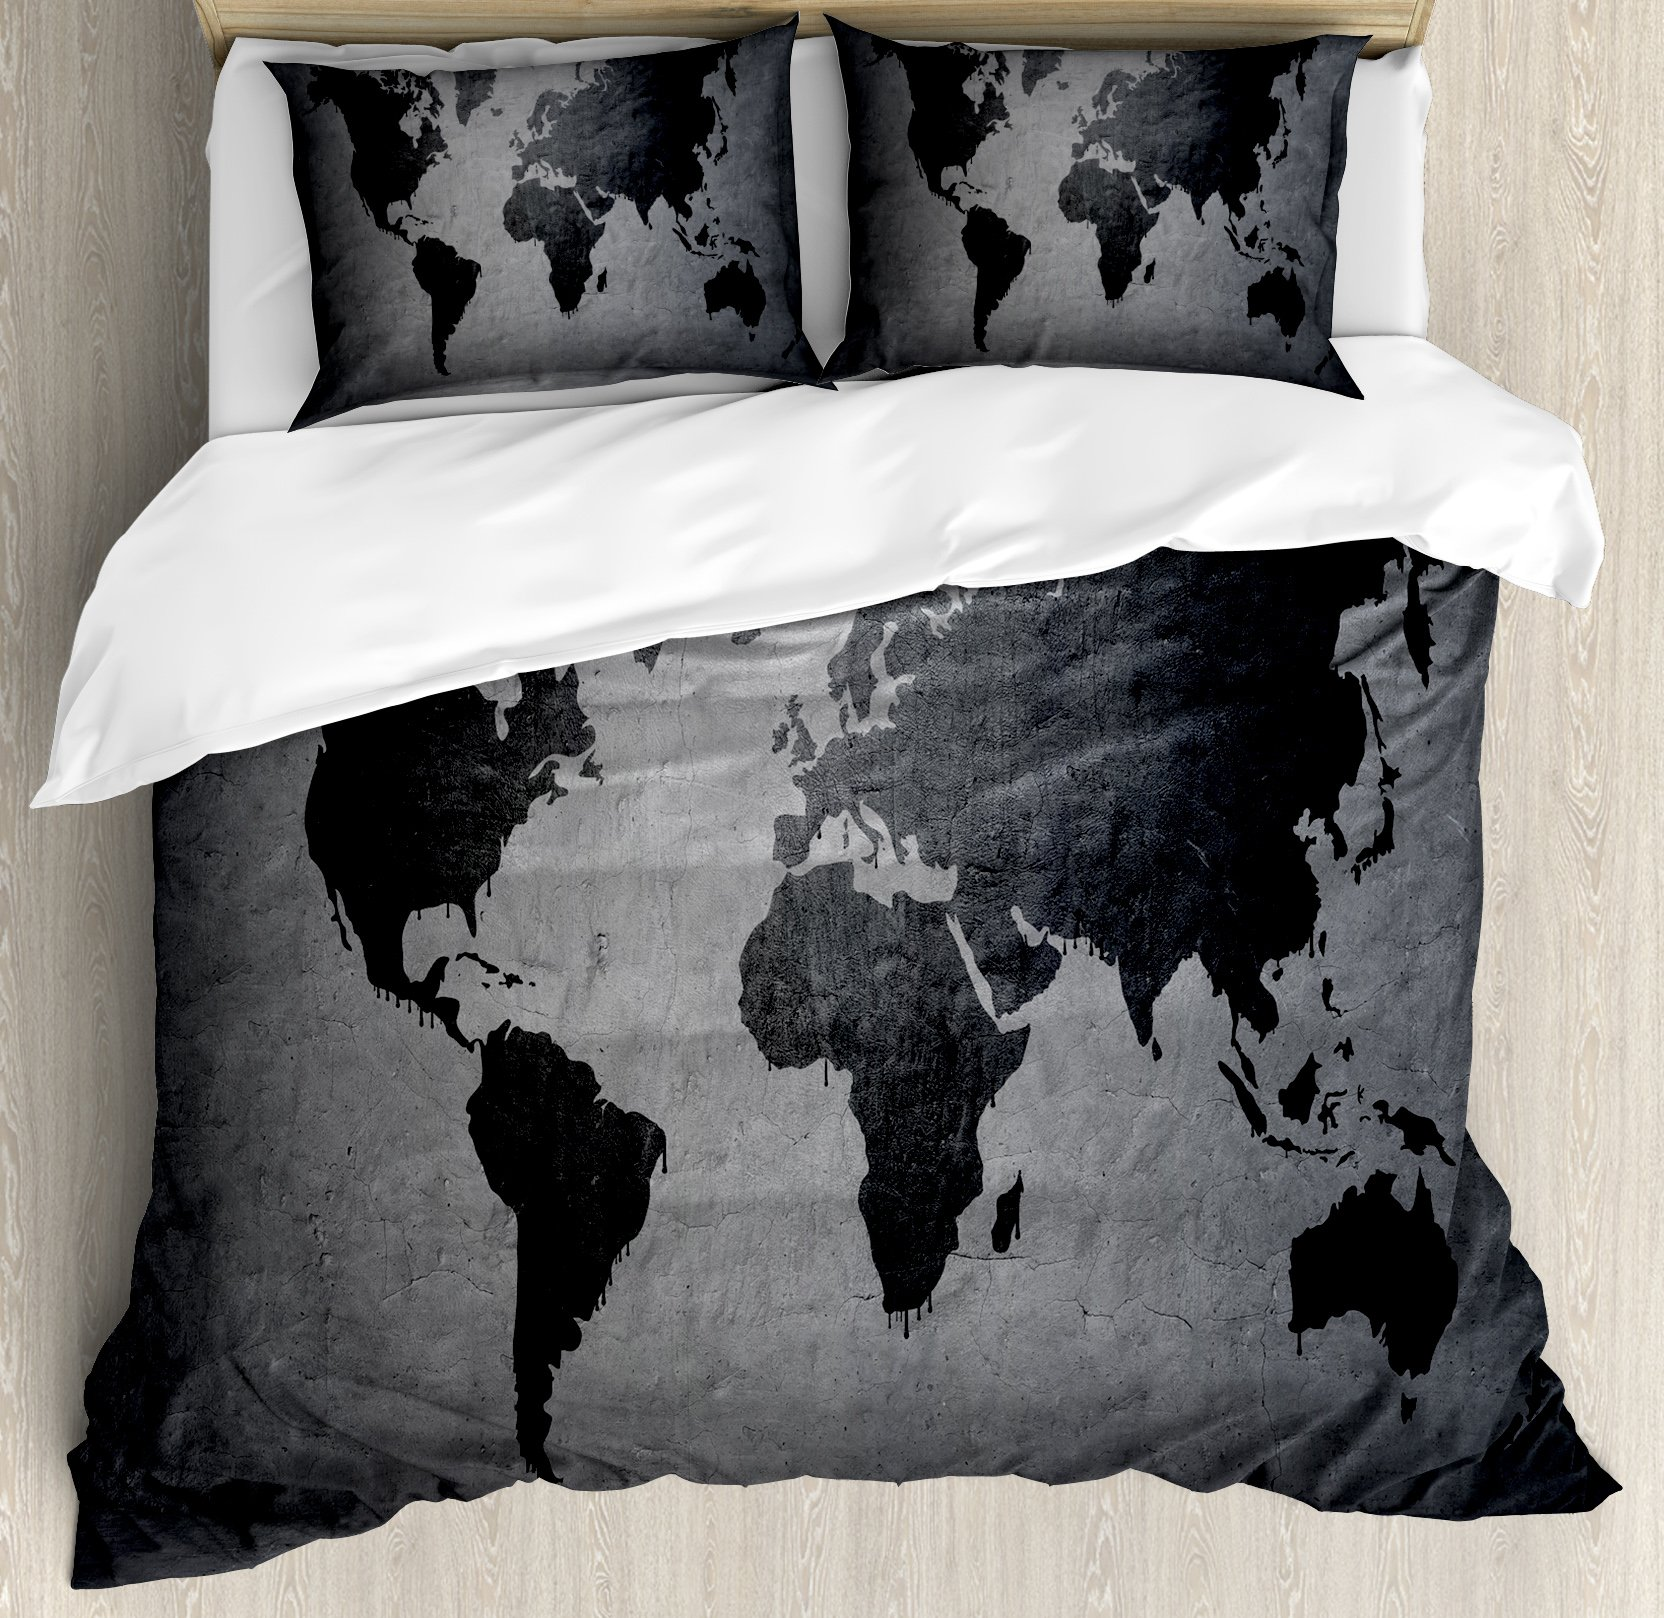 Dark Grey Duvet Cover Set King Size by Ambesonne, Black Colored World Map on Concrete Wall Image Urban Structure Grungy Rough Look, Decorative 3 Piece Bedding Set with 2 Pillow Shams, Grey Black